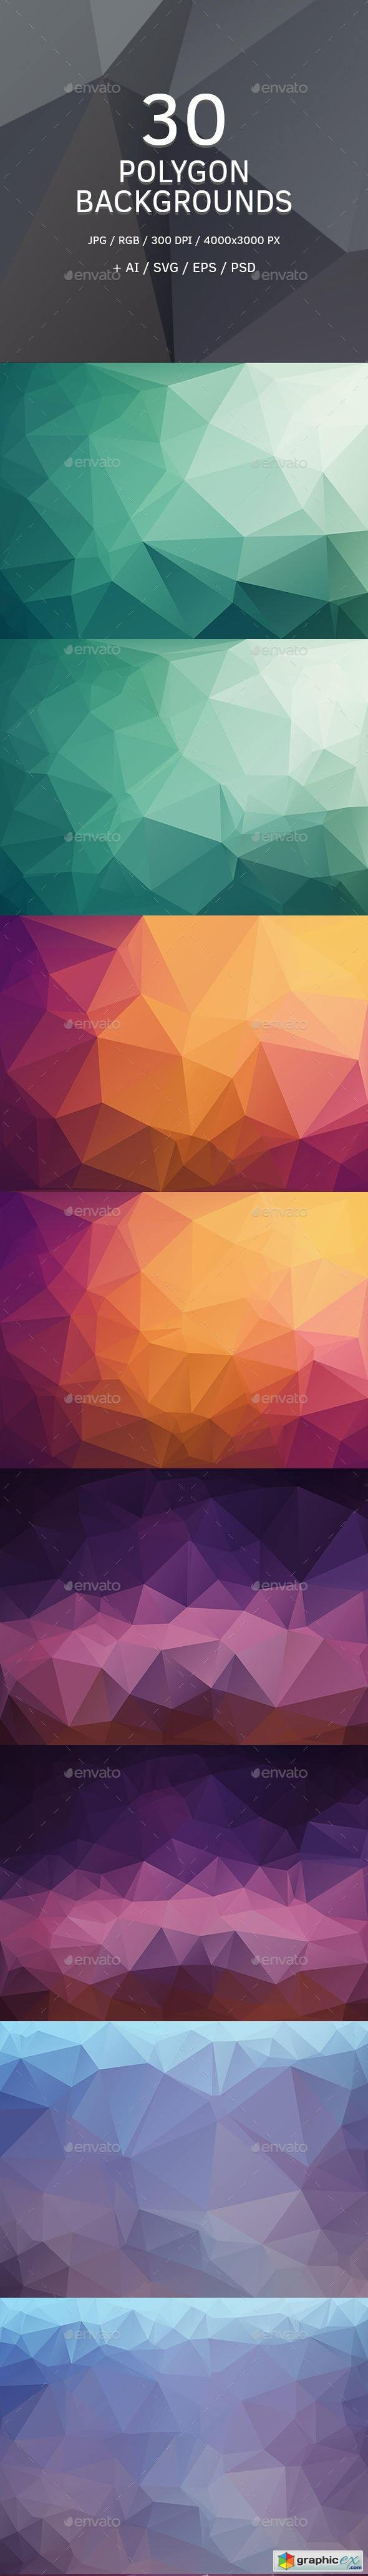 Polygon Backgrounds or Triangle Textures 9164509